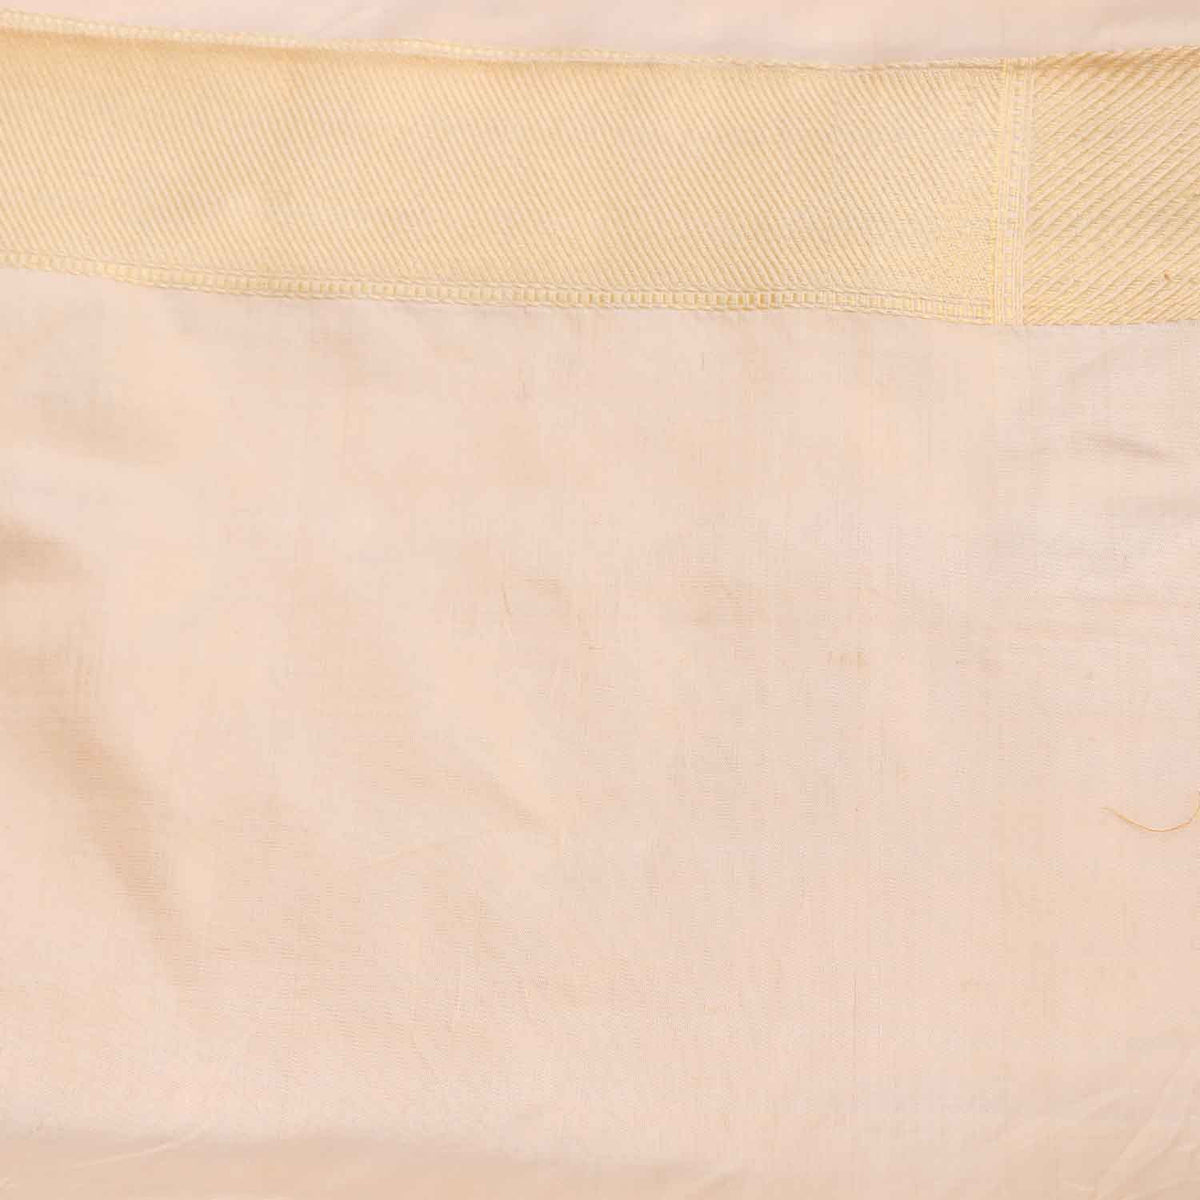 White Pure Soft Satin Silk Banarasi Handloom Saree - Tilfi - 4